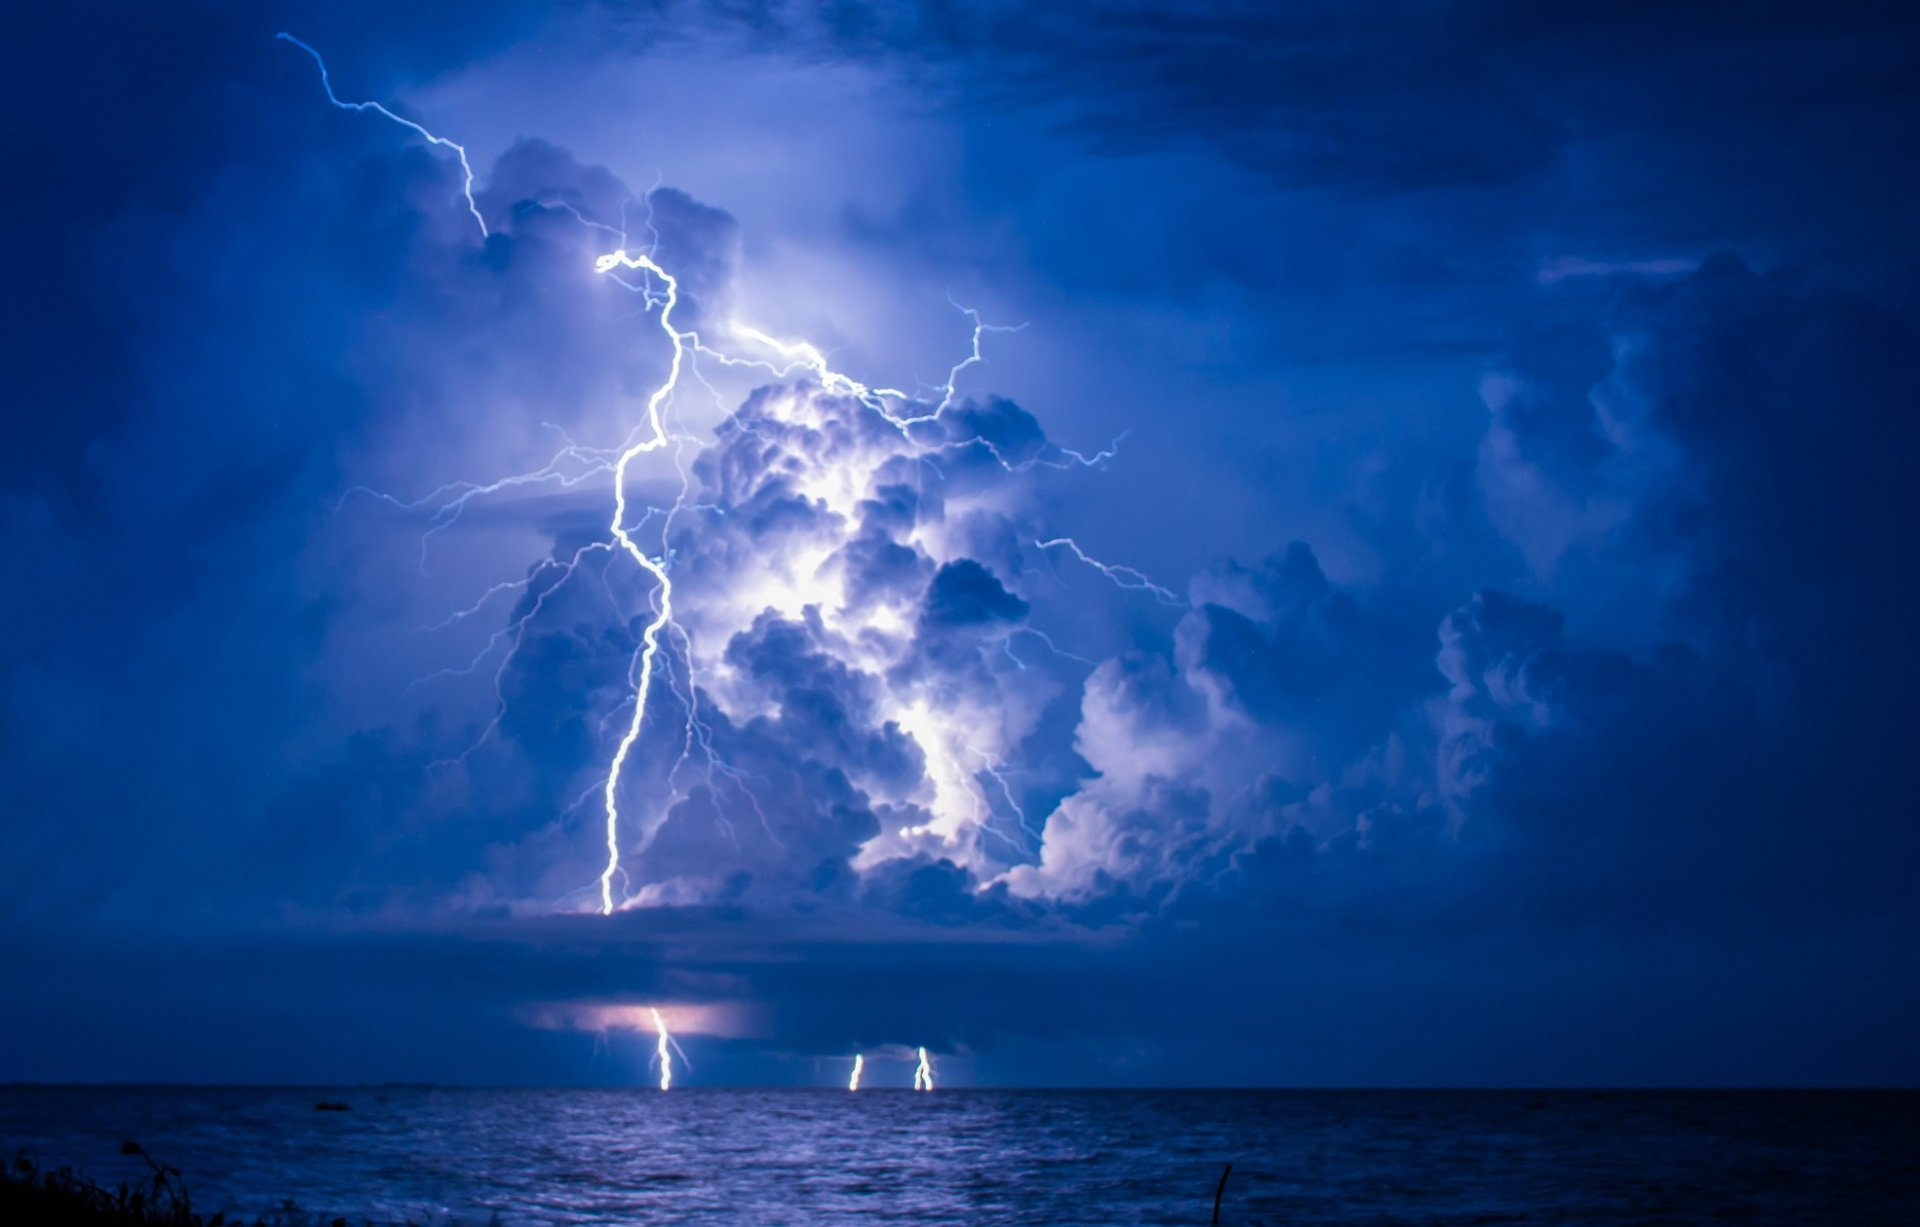 Catatumbo Lightning in Venezuela - Best Time